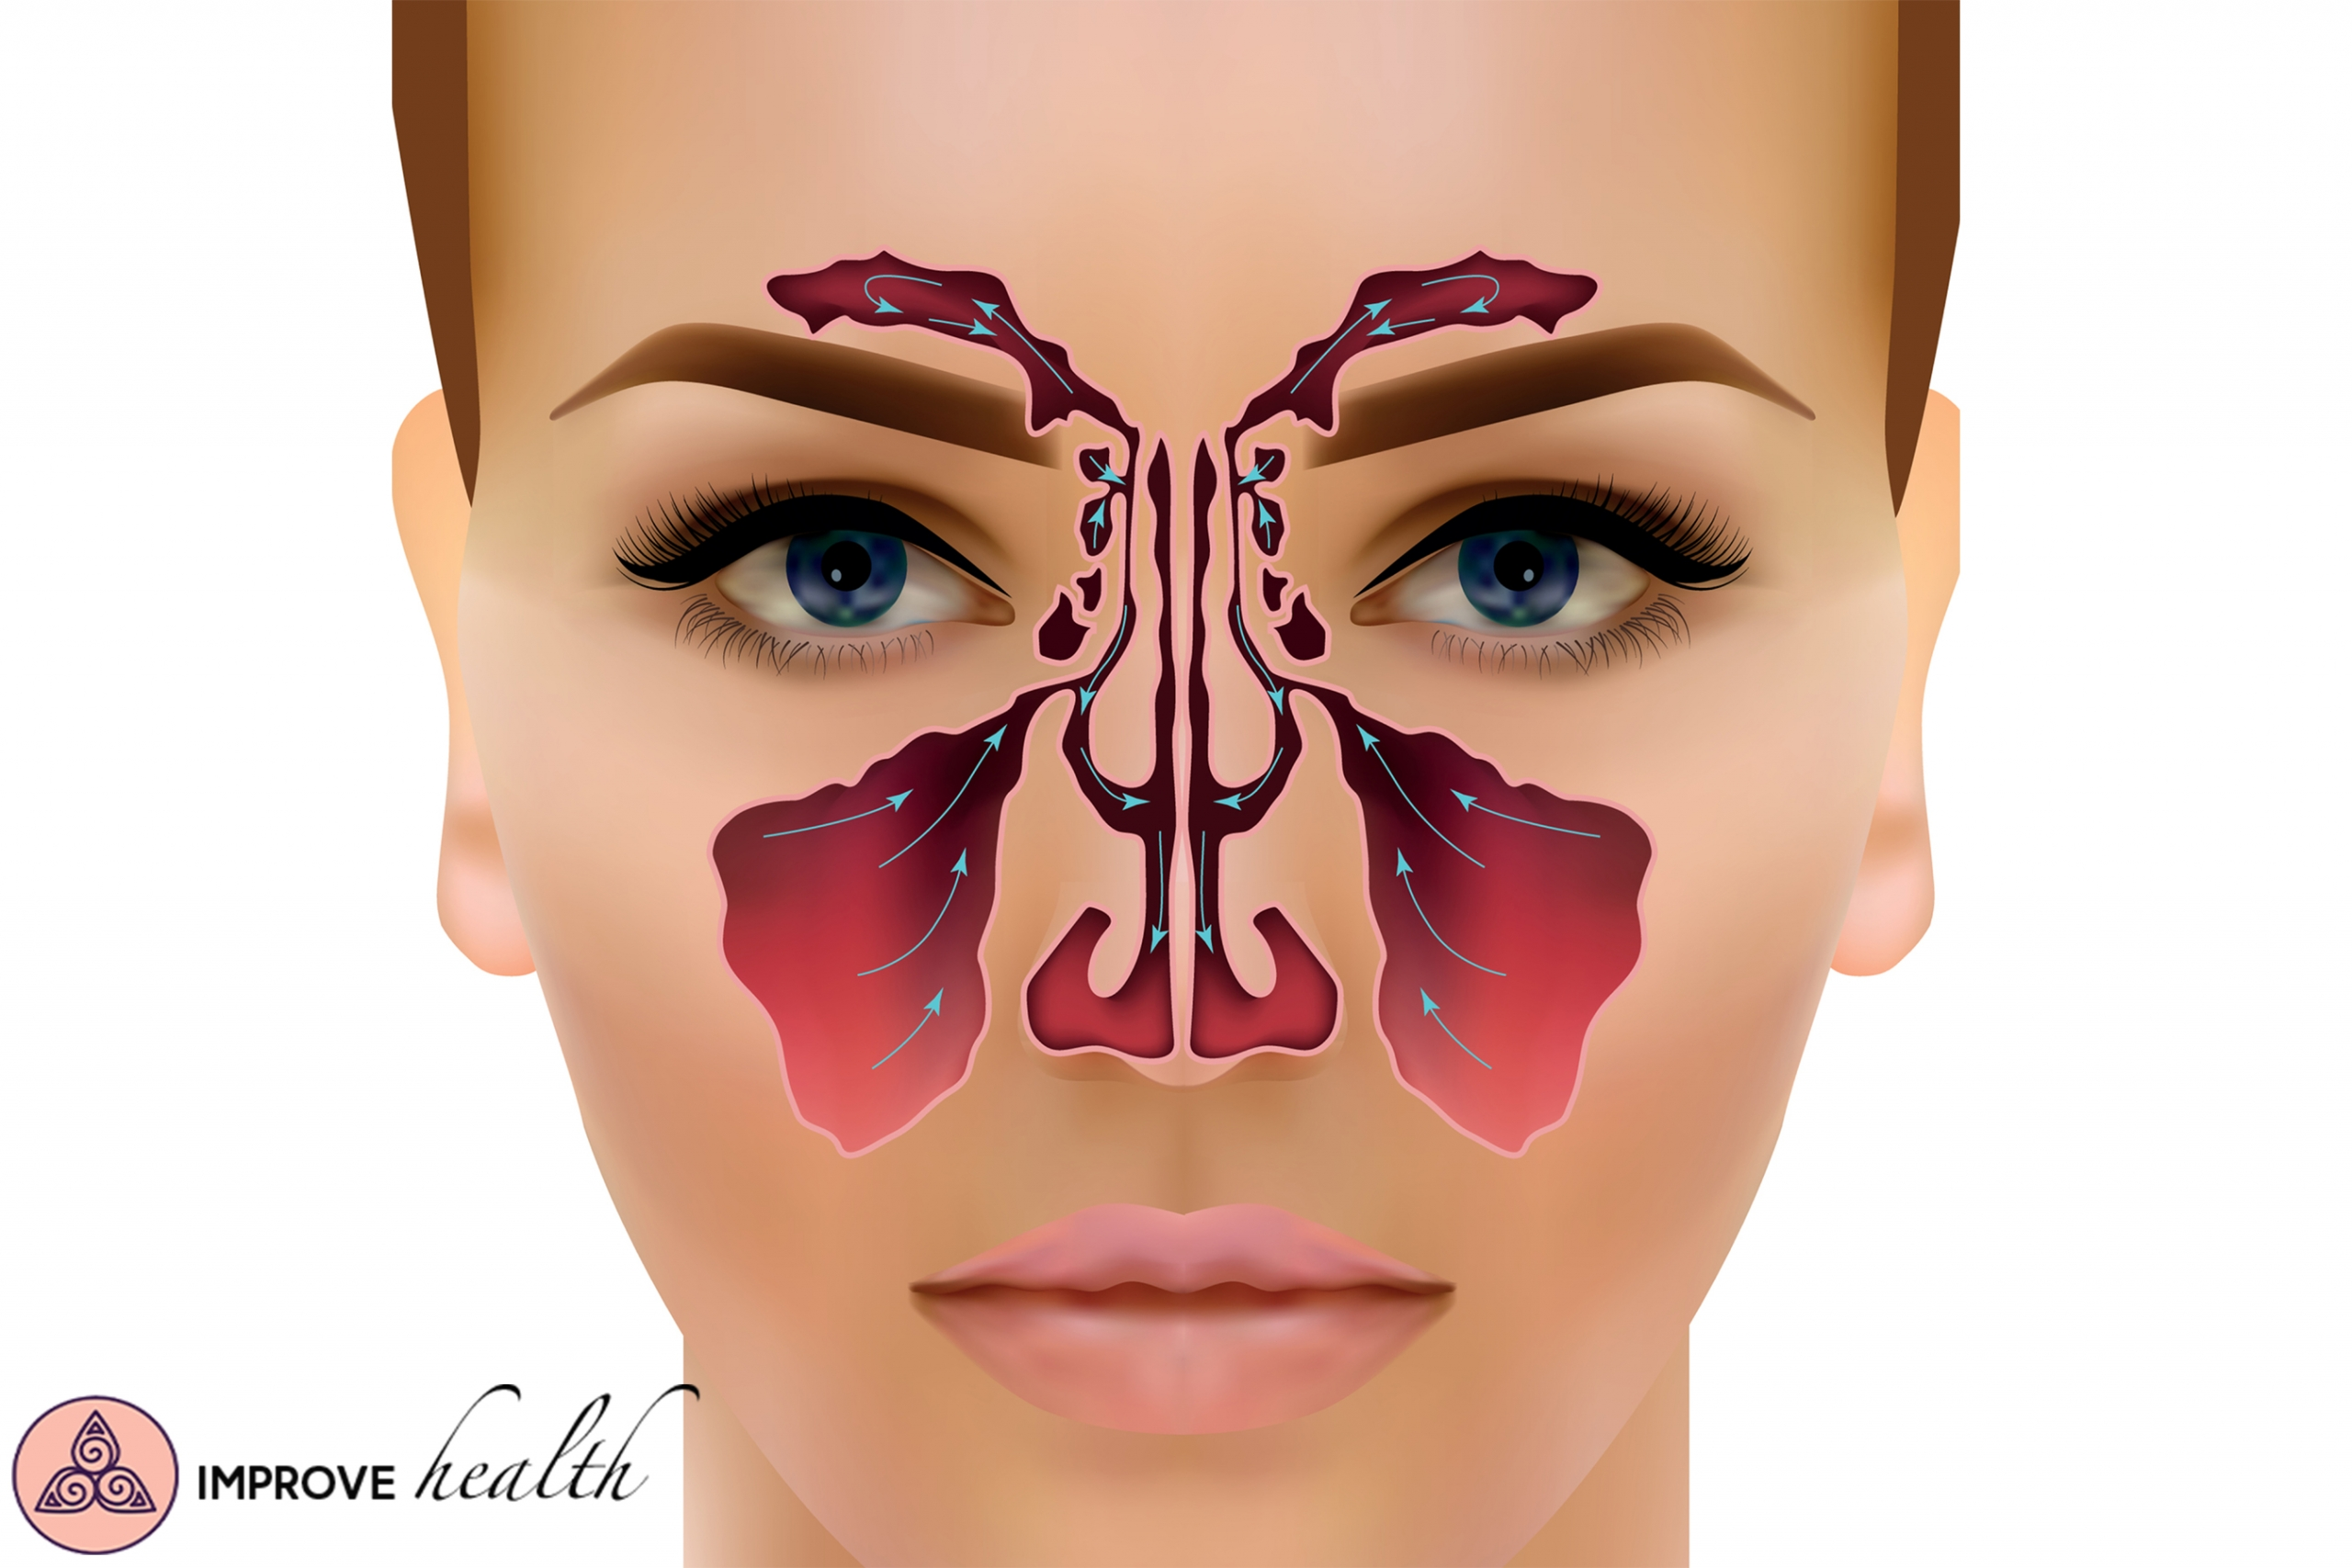 How to manage sinusitis naturally